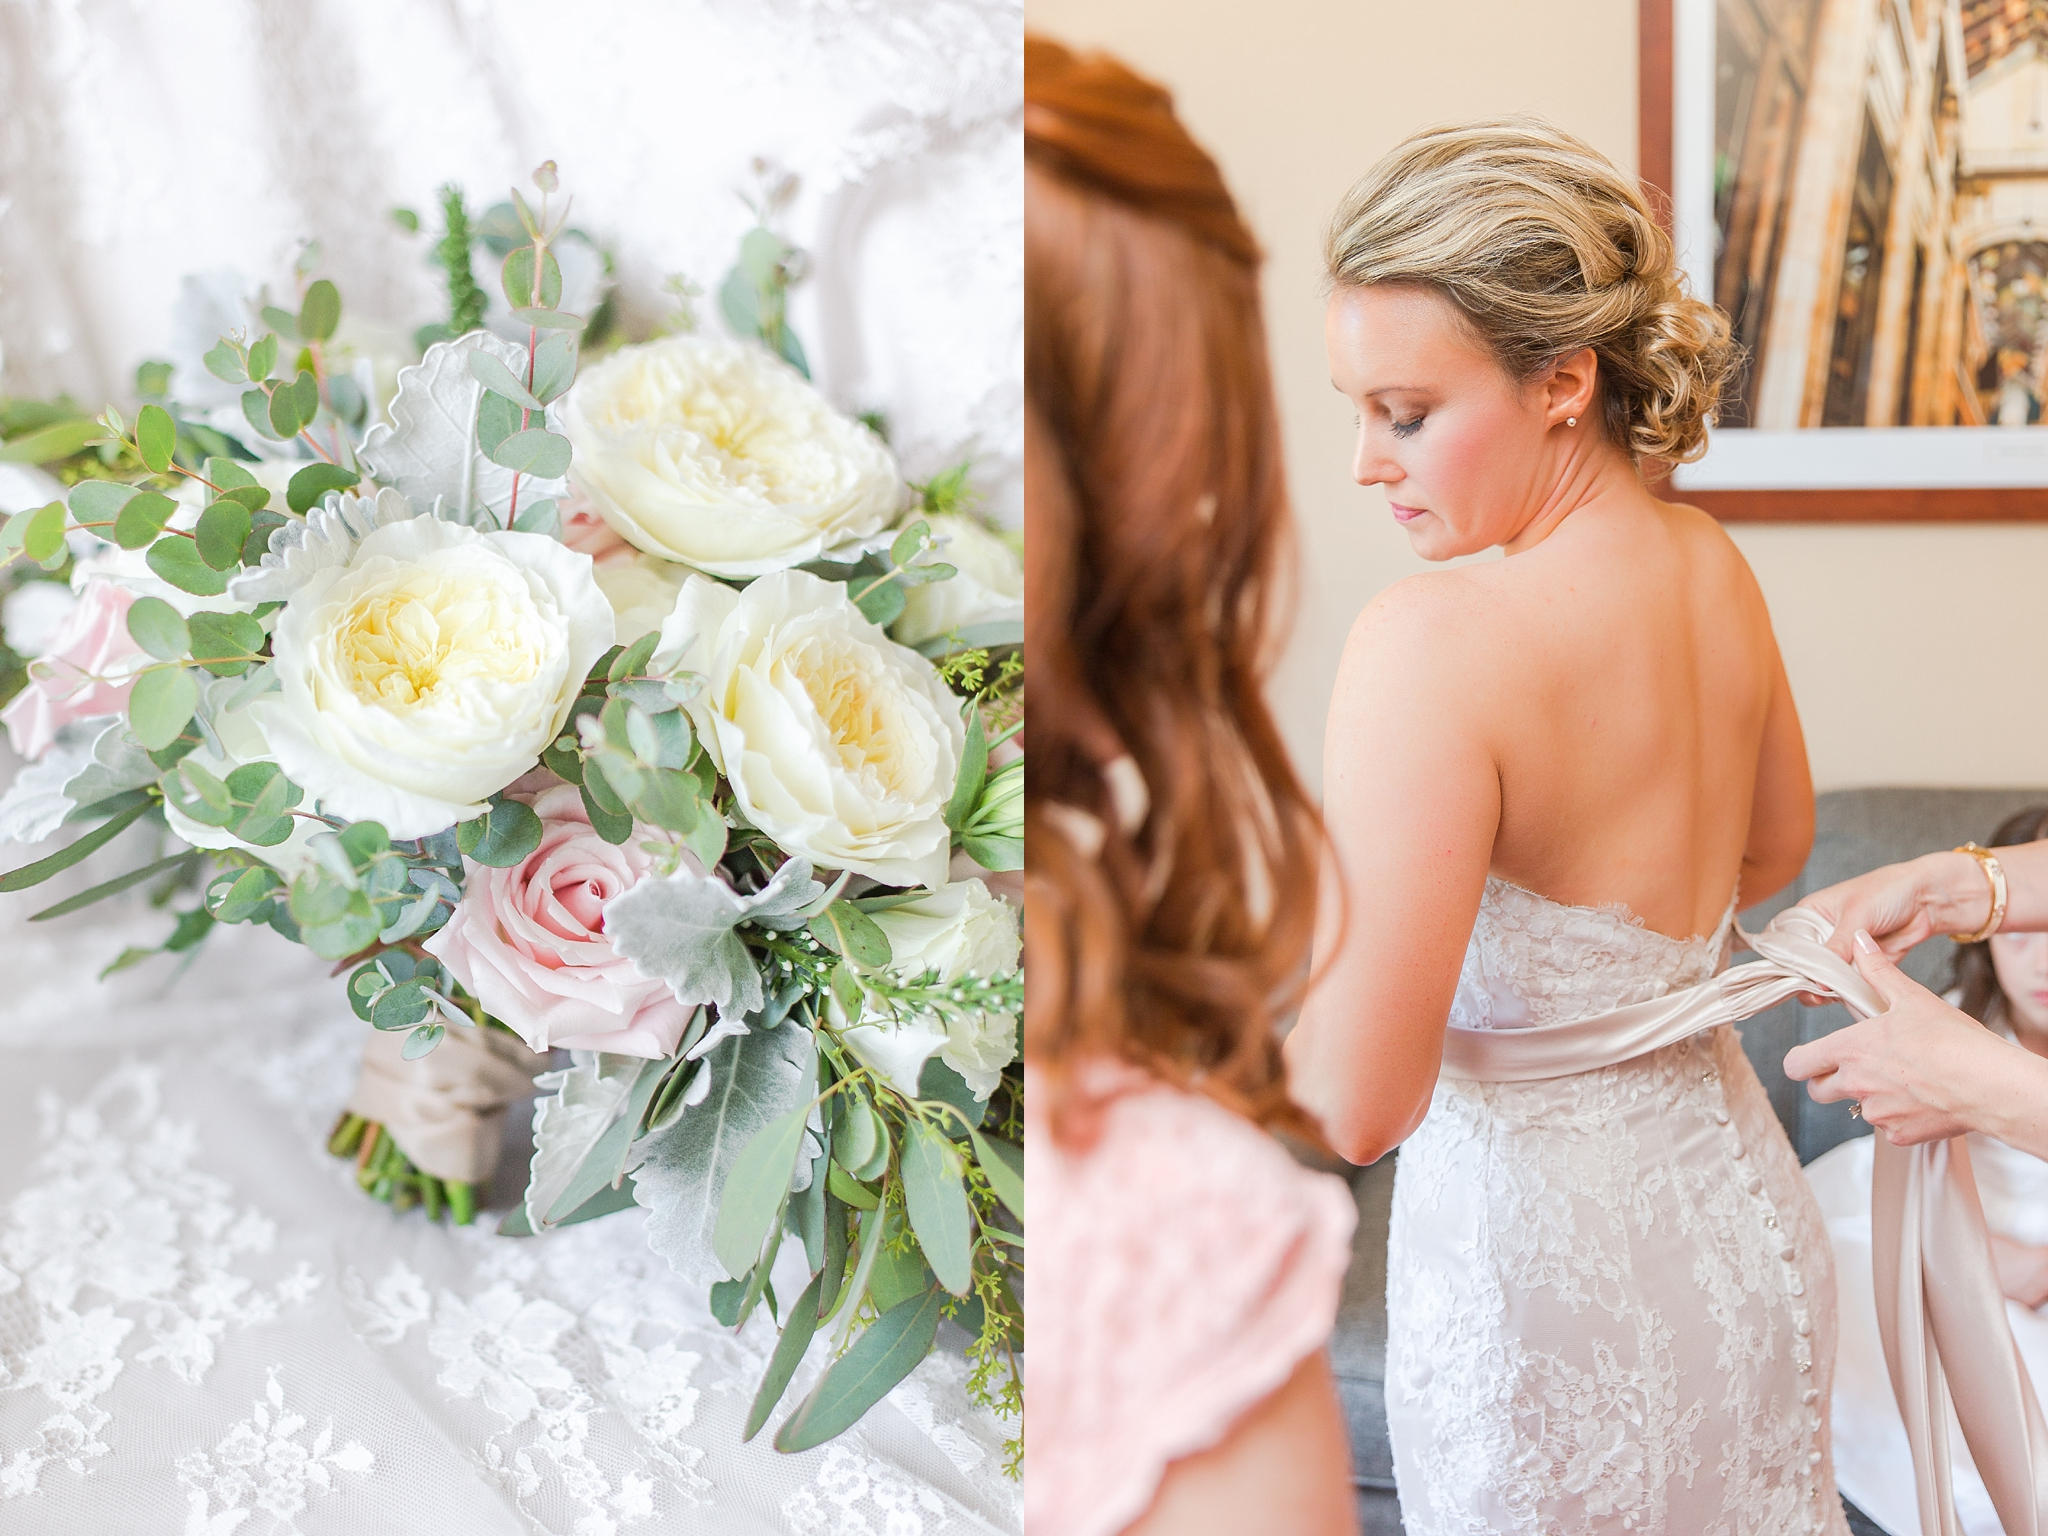 fun-candid-laid-back-wedding-photos-at-wellers-carriage-house-in-saline-michigan-and-at-the-eagle-crest-golf-resort-by-courtney-carolyn-photography_0011.jpg